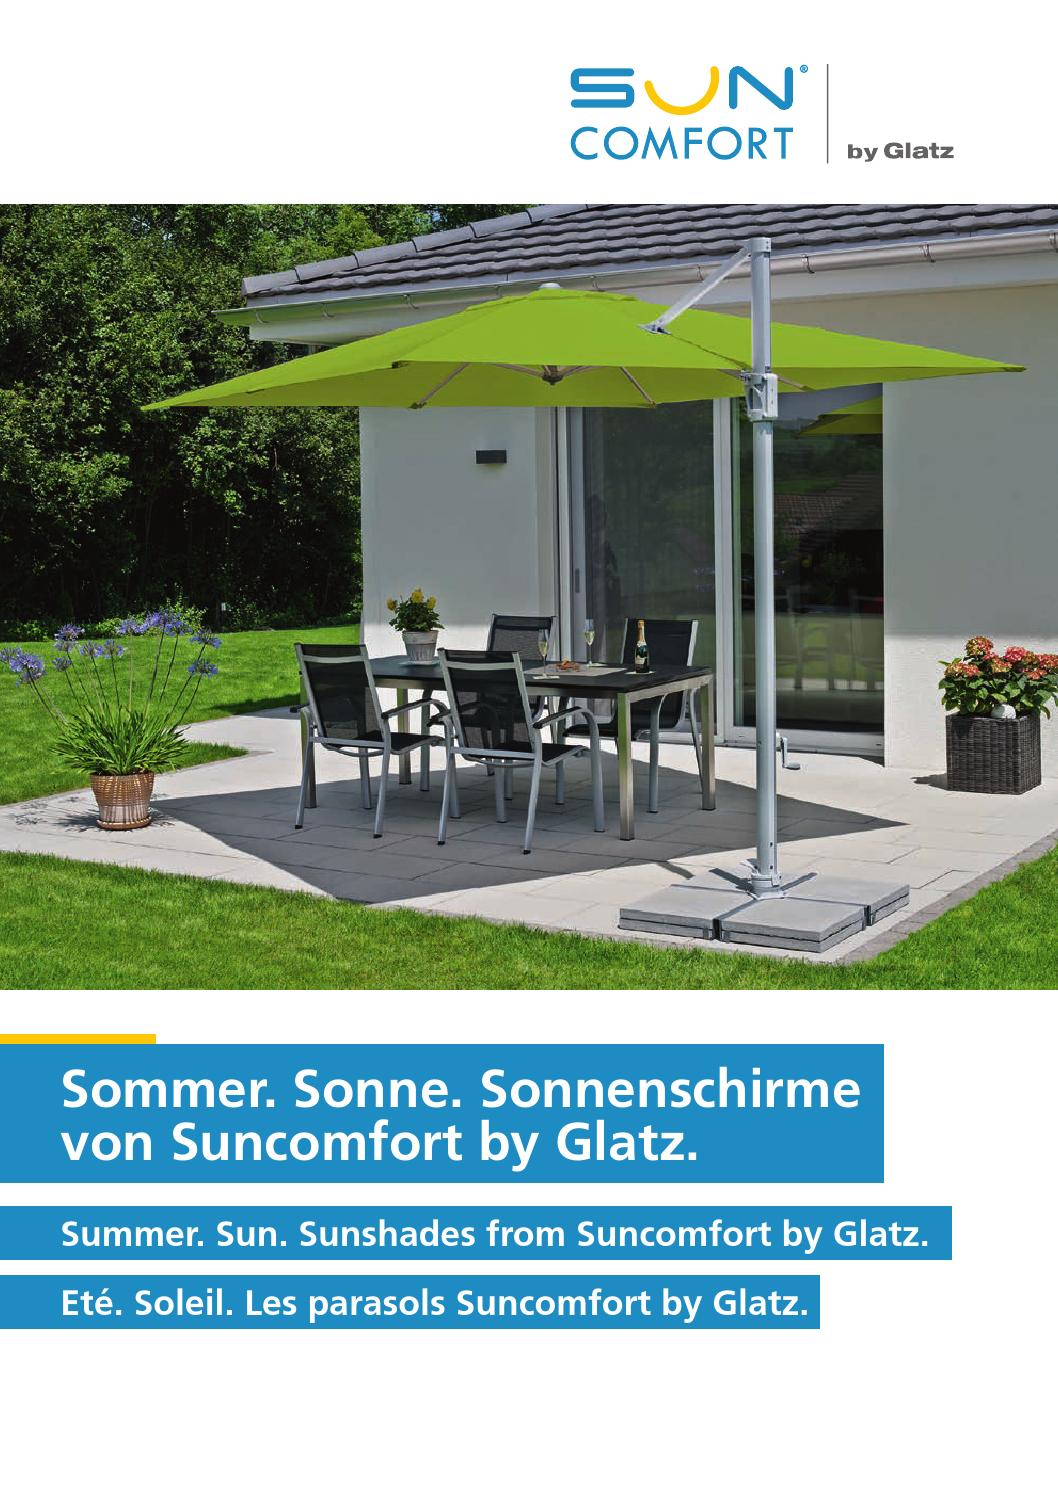 Glatz Suncomfort Sunflex Glatz Suncomfort Katalog By Opus Marketing Gmbh Issuu